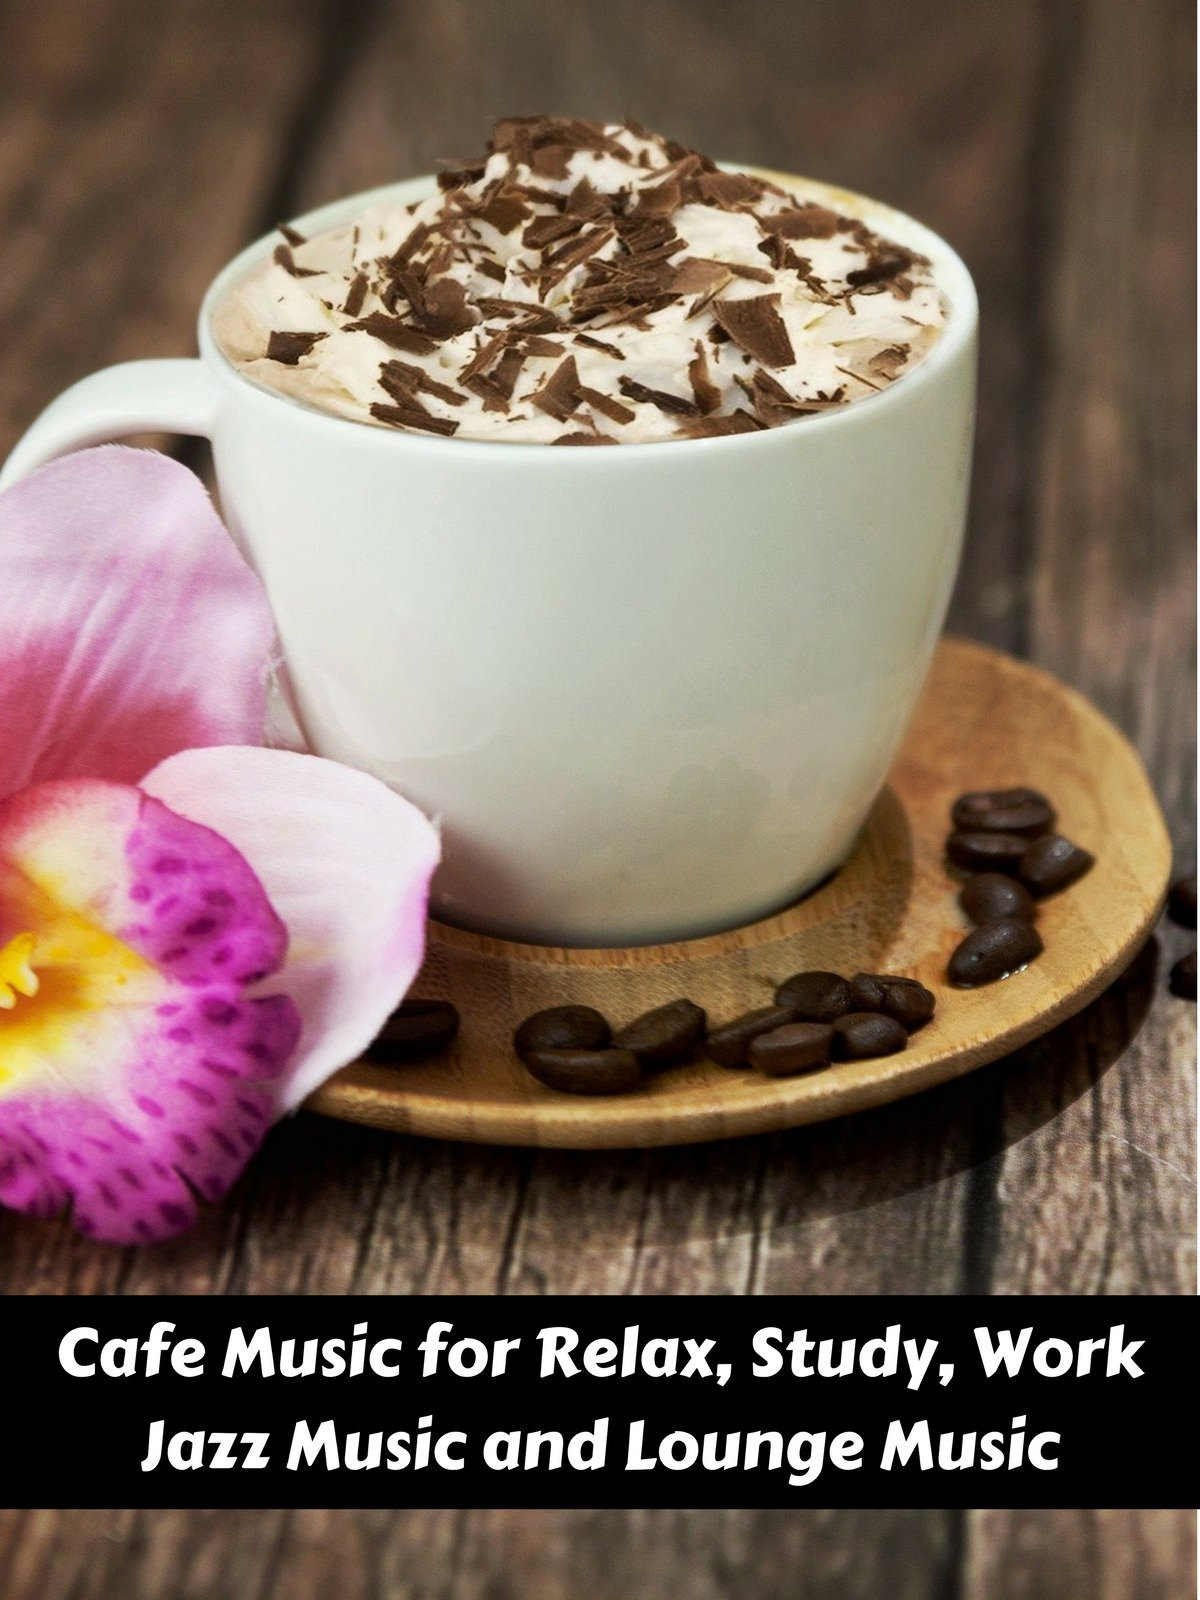 Cafe Music for Relax, Study, Work